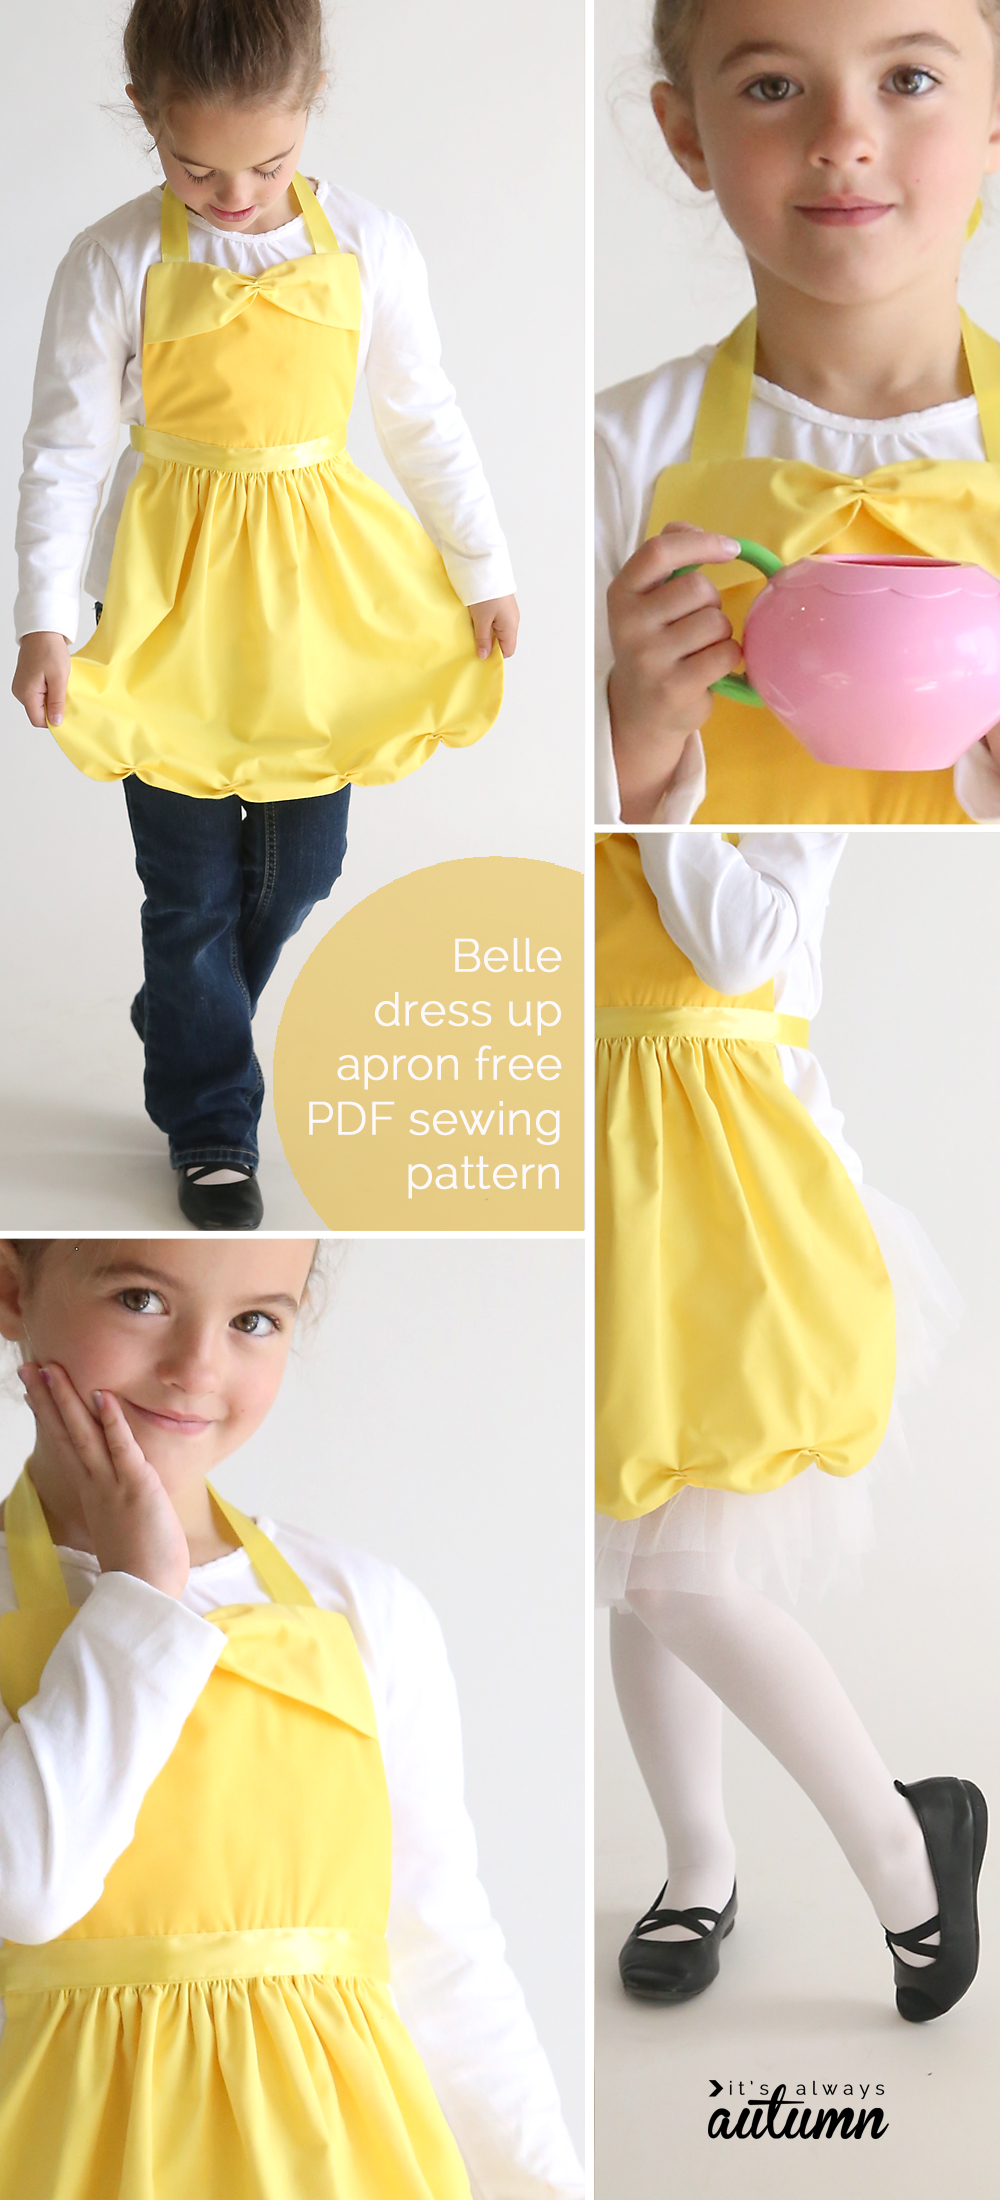 White apron pattern - Get The Free Pdf Sewing Pattern For This Easy To Make Belle